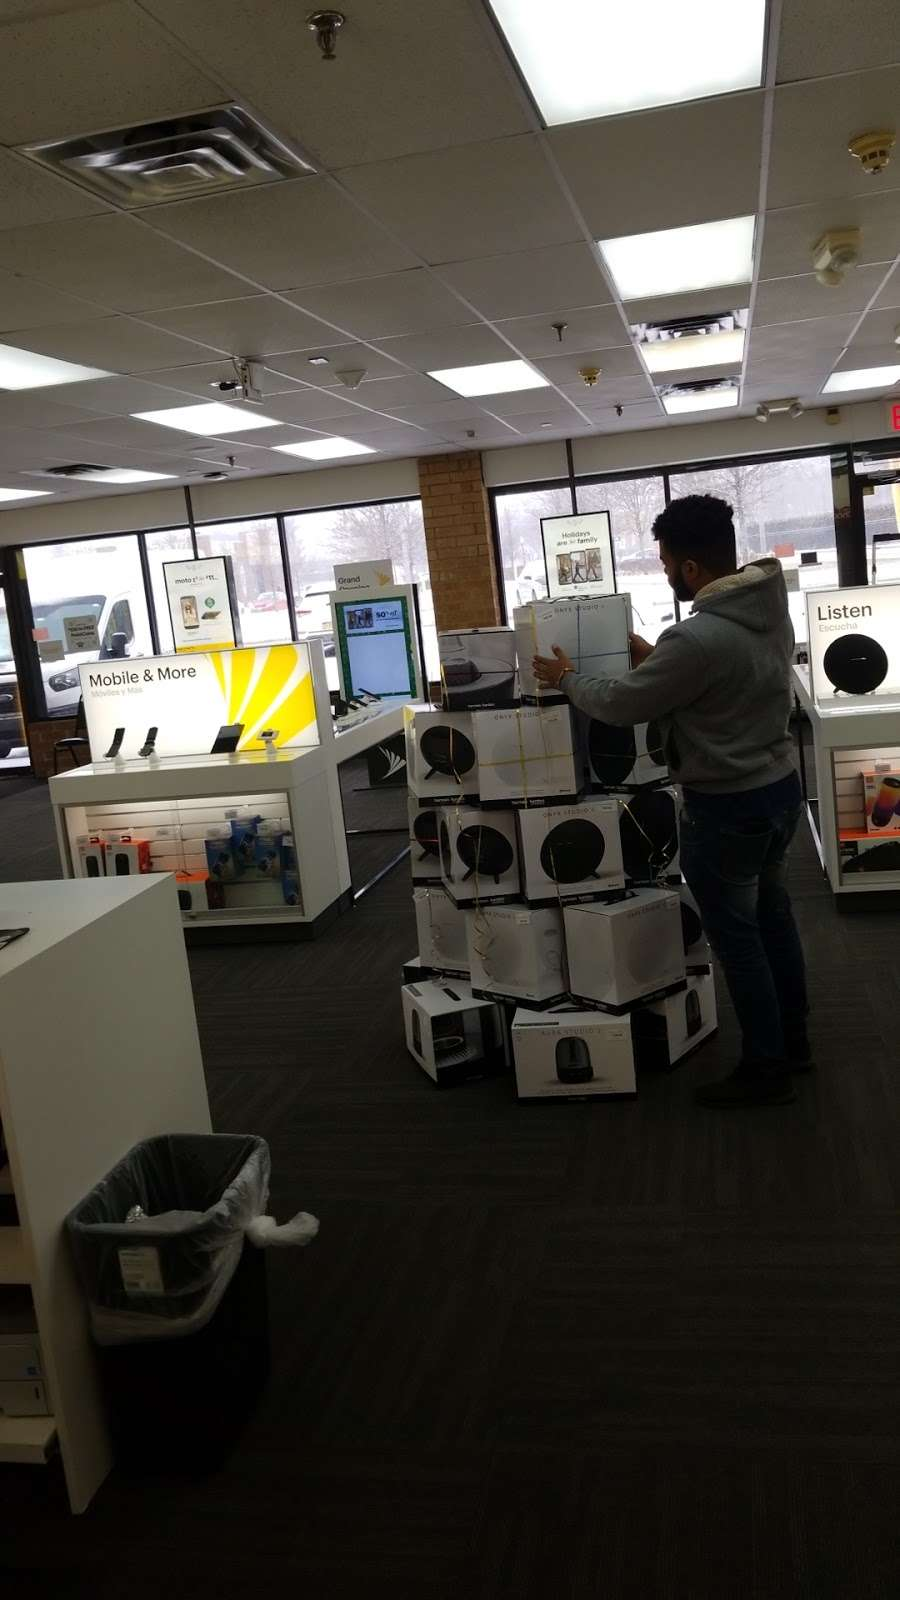 Sprint Store - electronics store  | Photo 4 of 8 | Address: 112A Wheeler Rd, Central Islip, NY 11722, USA | Phone: (631) 533-9999